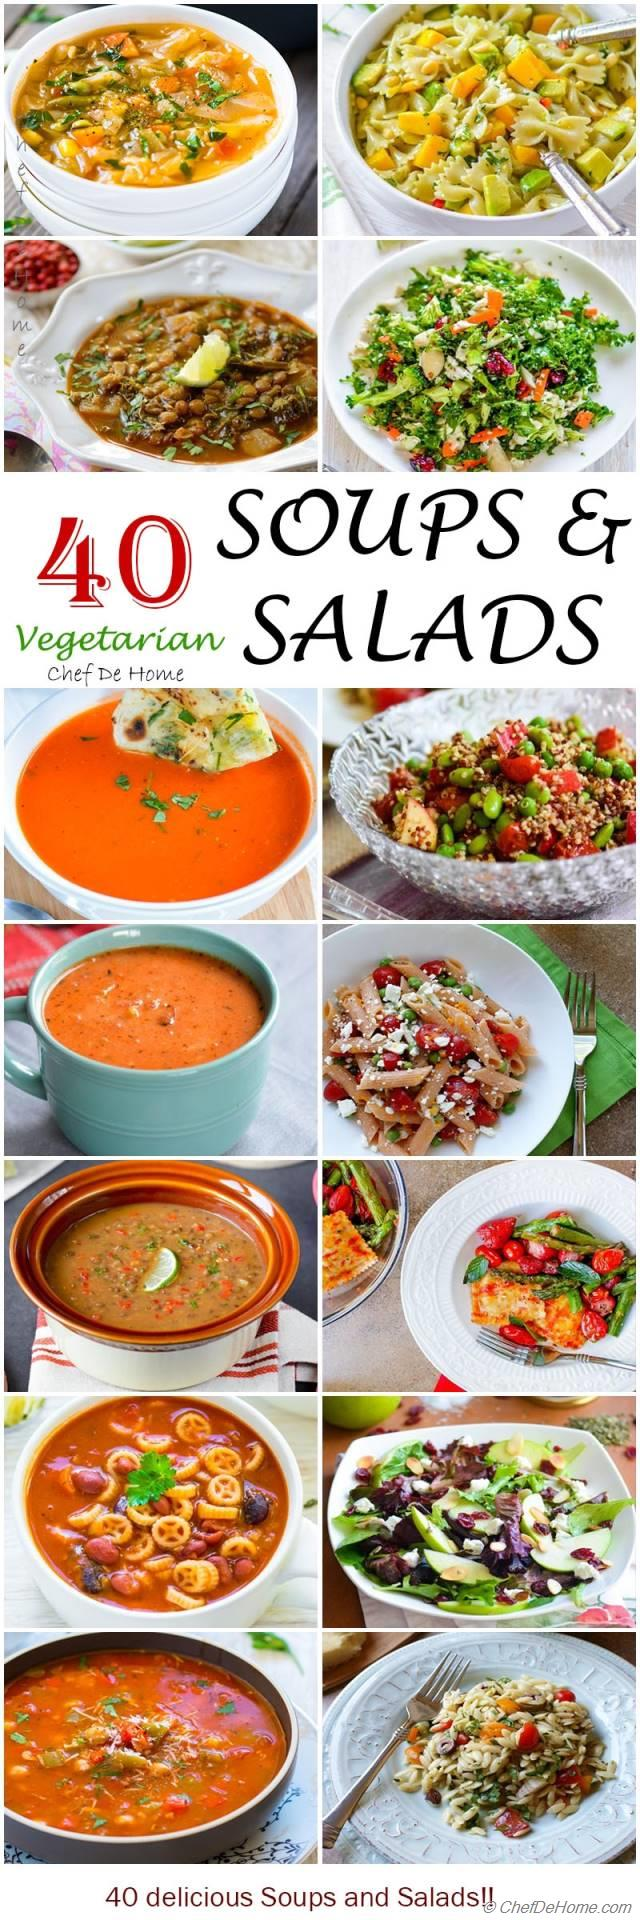 40 Vegetarian Soup and Salad Recipes